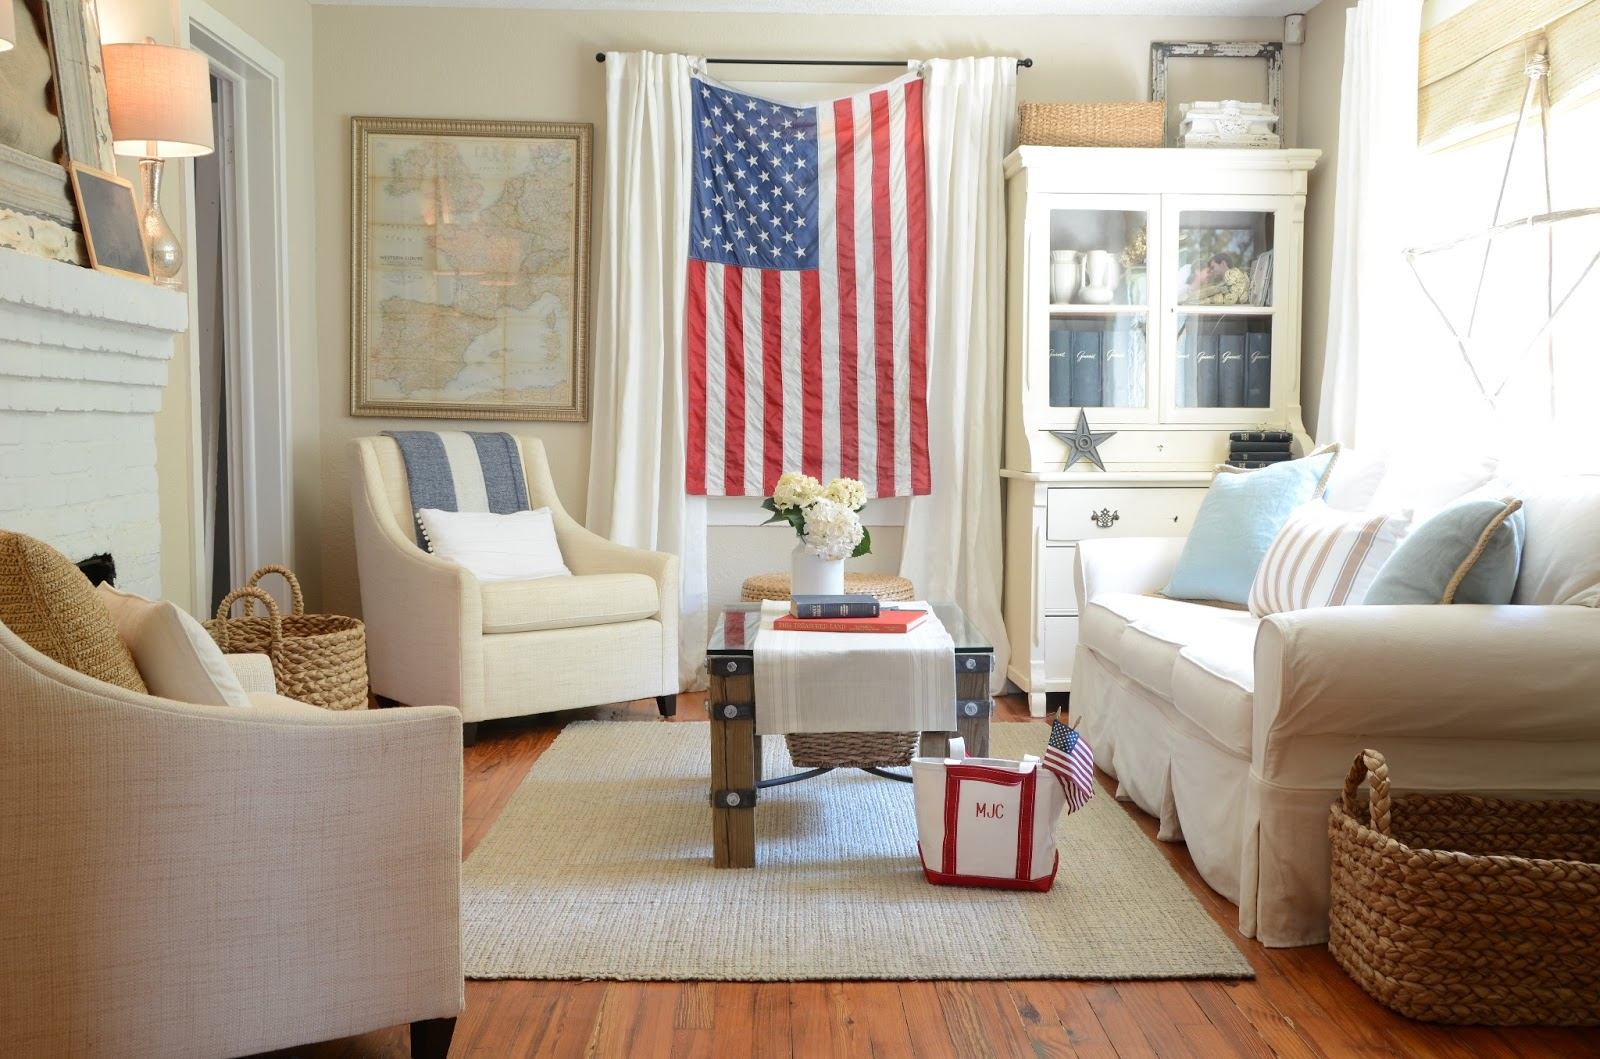 IRON & TWINE: Living Room Decor | July 4th